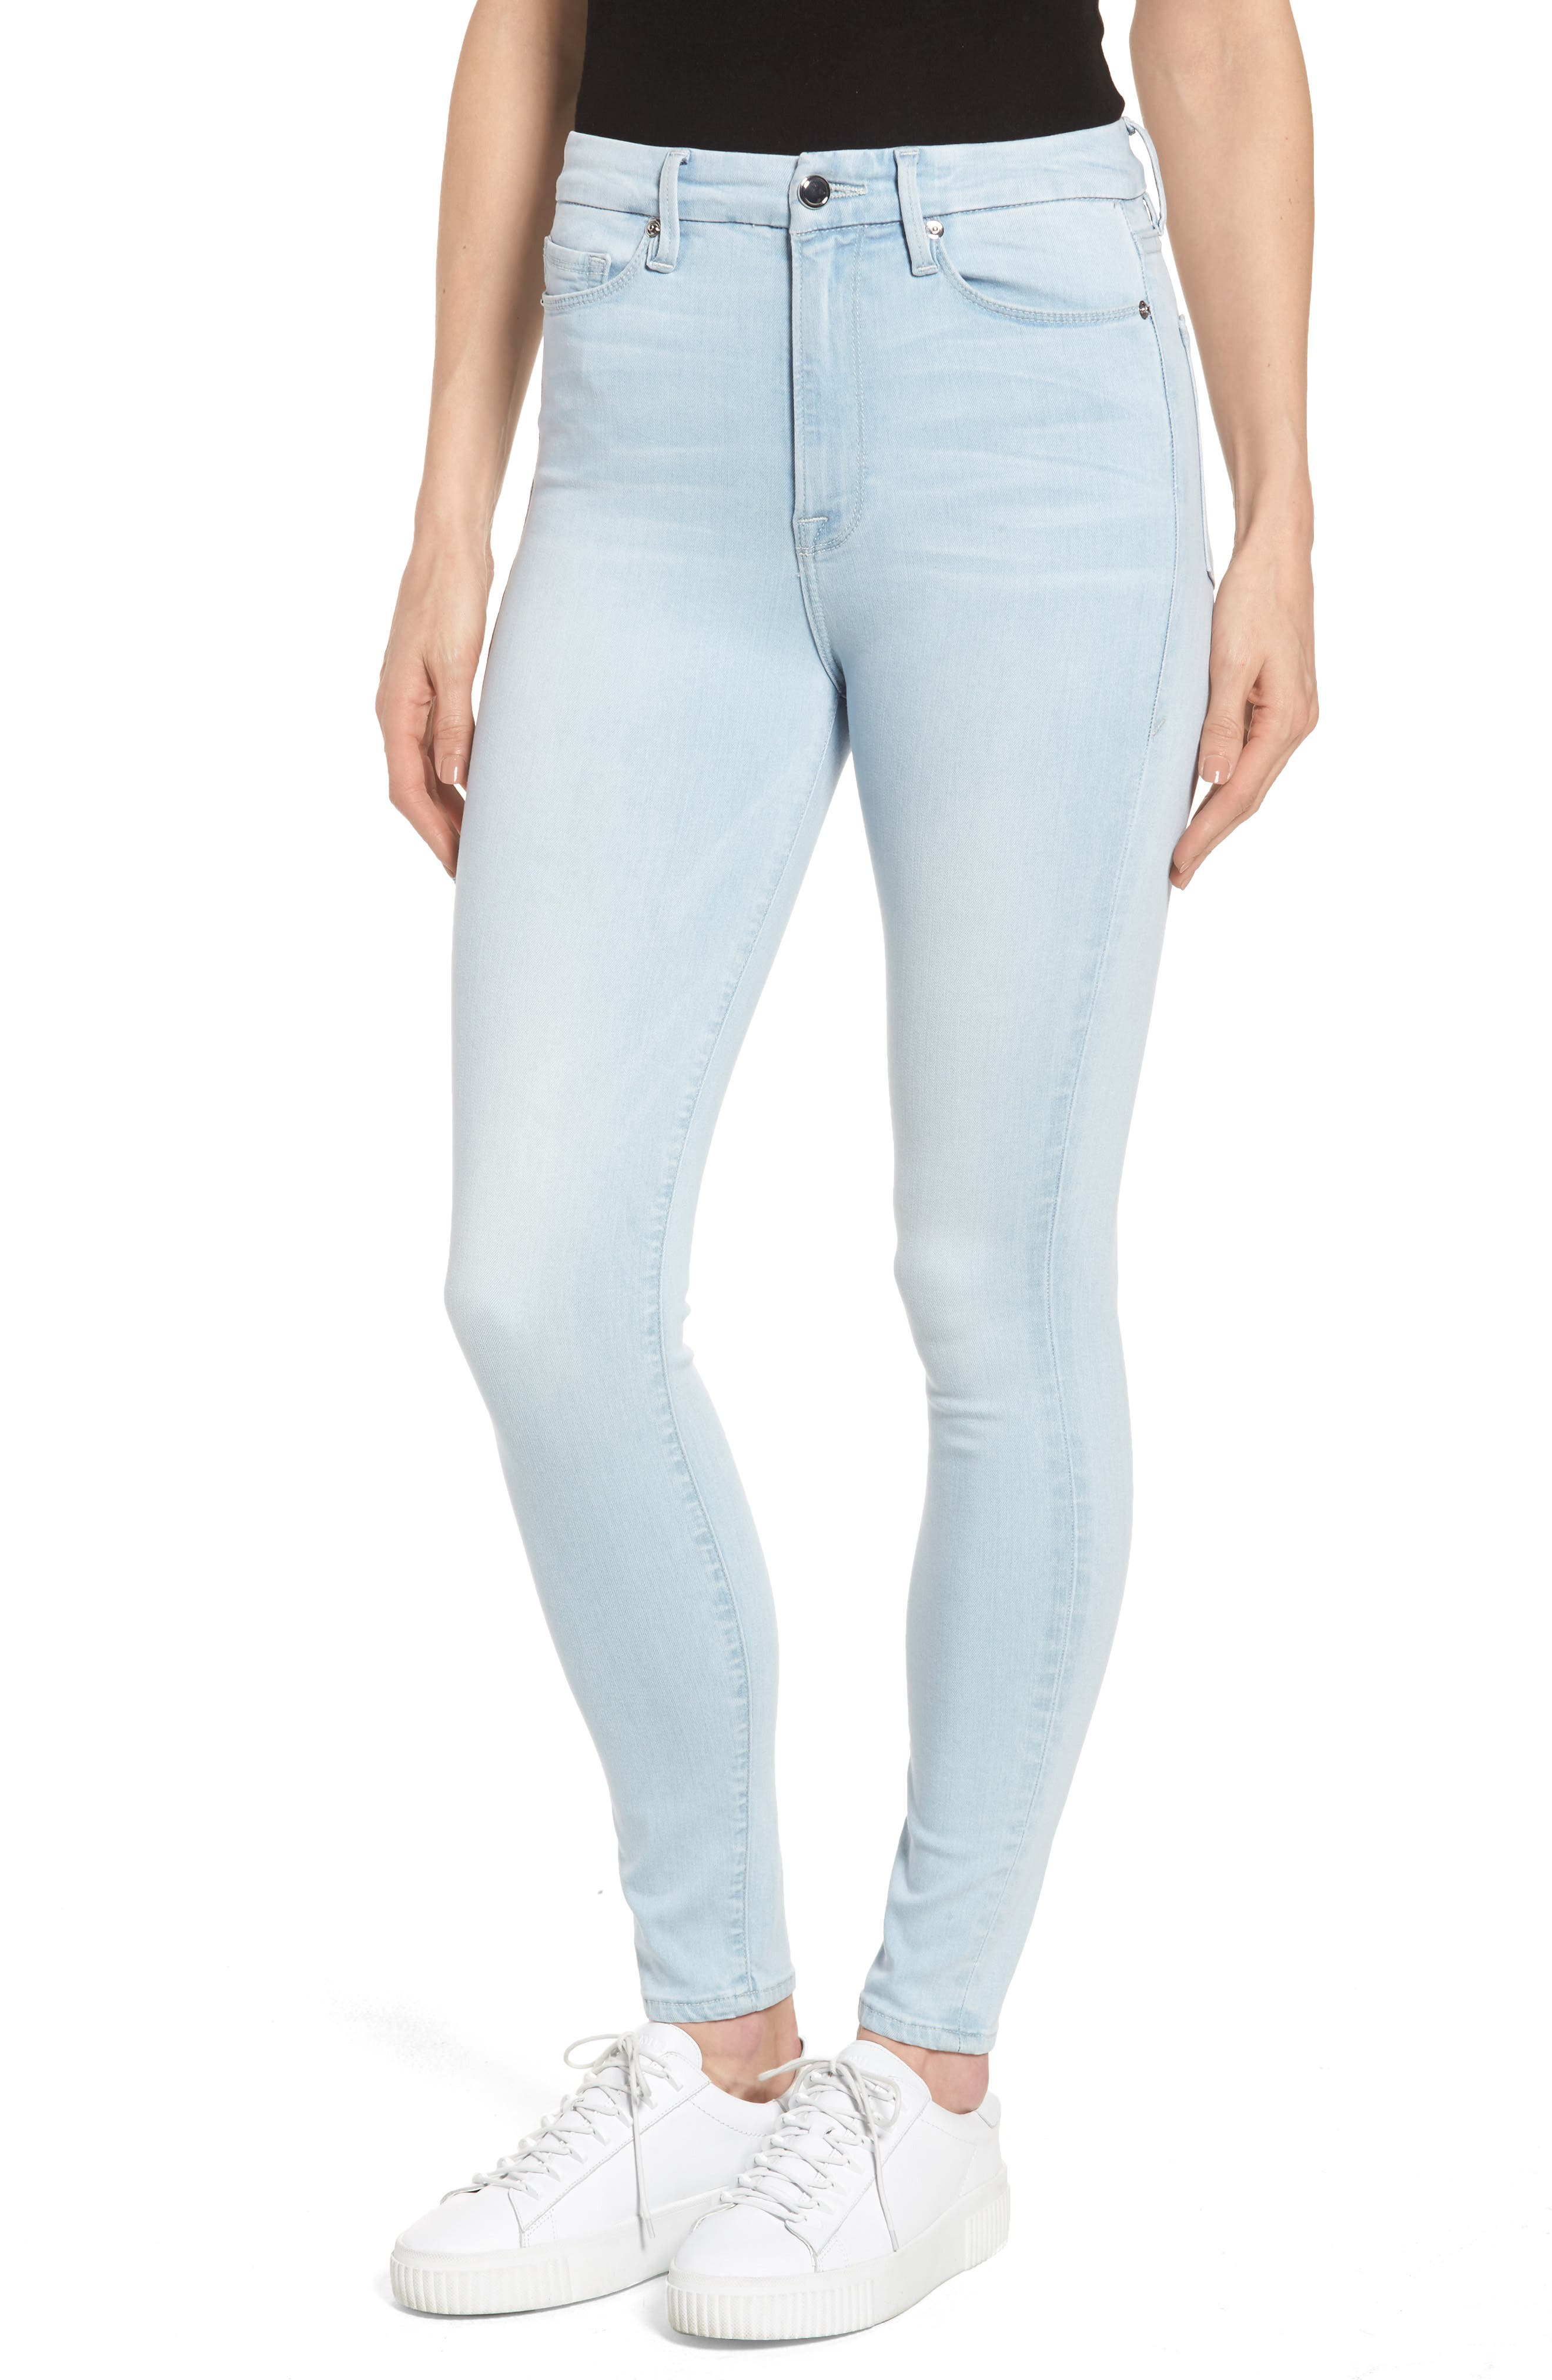 Main Image - Good American Good Waist High Waist Crop Skinny Jeans